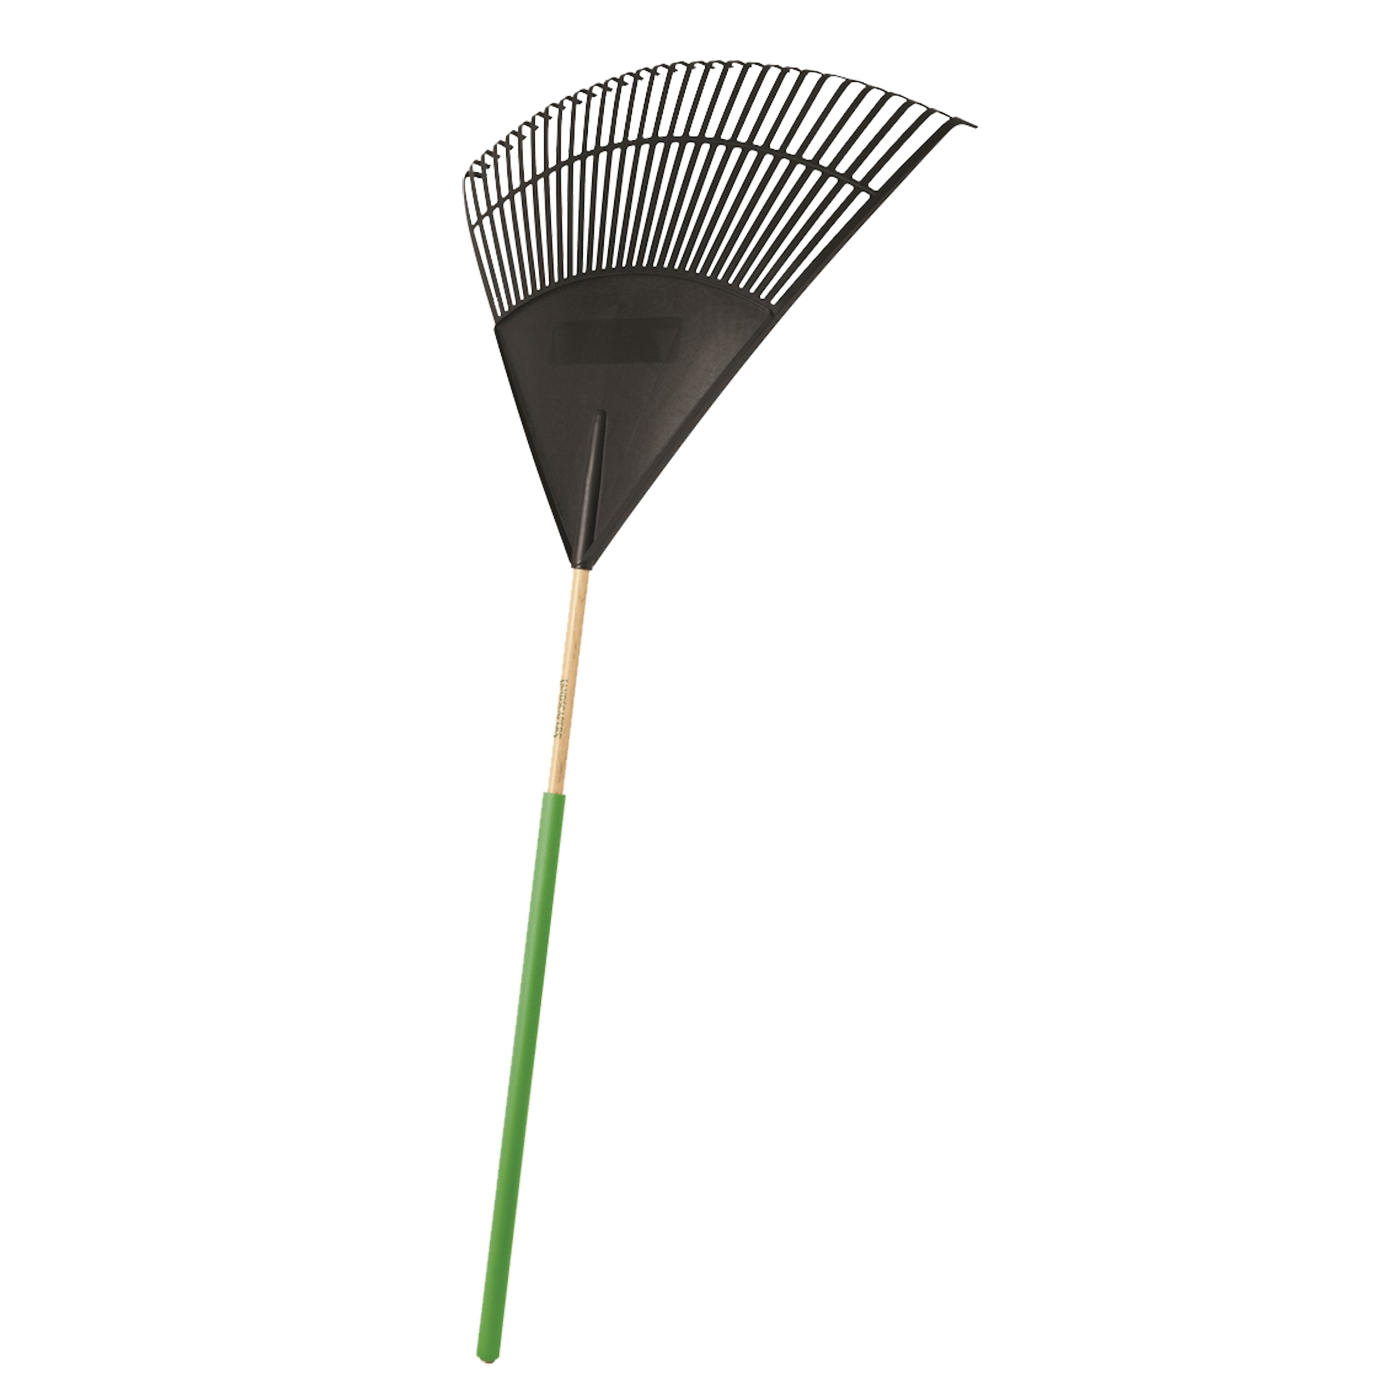 Picture of Landscapers Select 34590 Lawn/Leaf Rake, Poly Tine, 30 -Tine, Wood Handle, 48 in L Handle